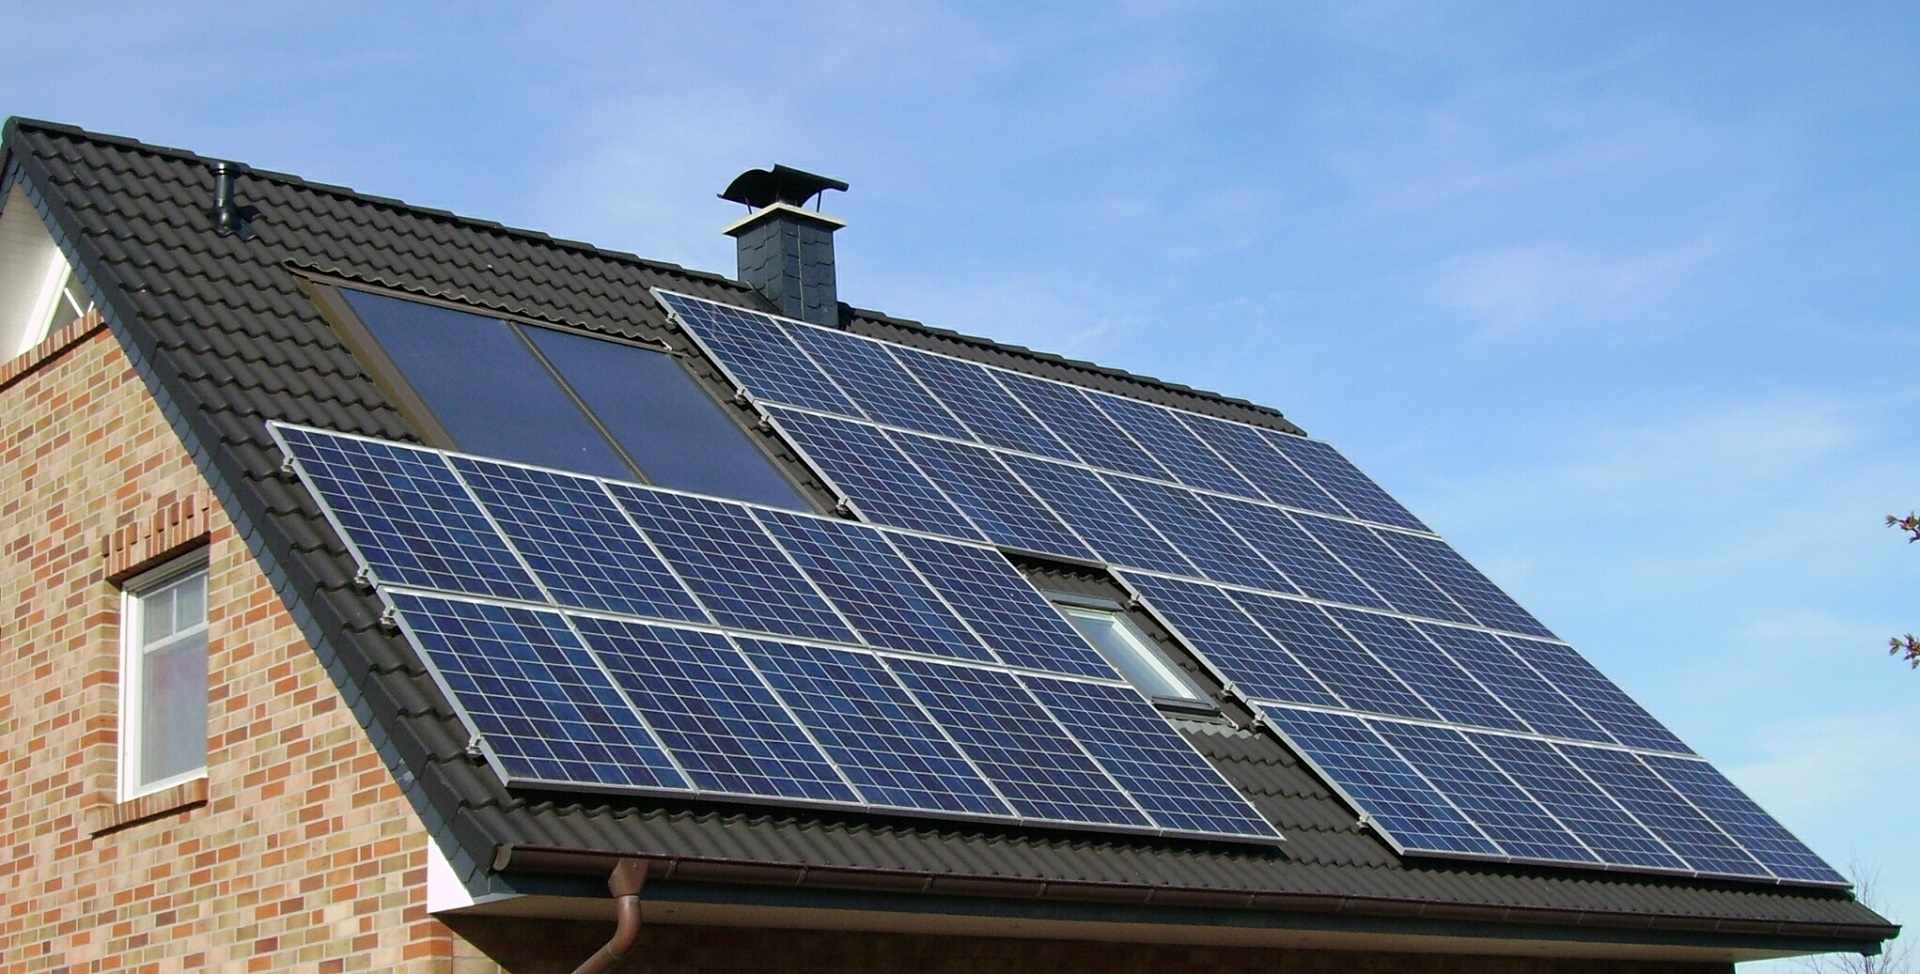 solar panels on house; solar tax credit; Photo by skeeze